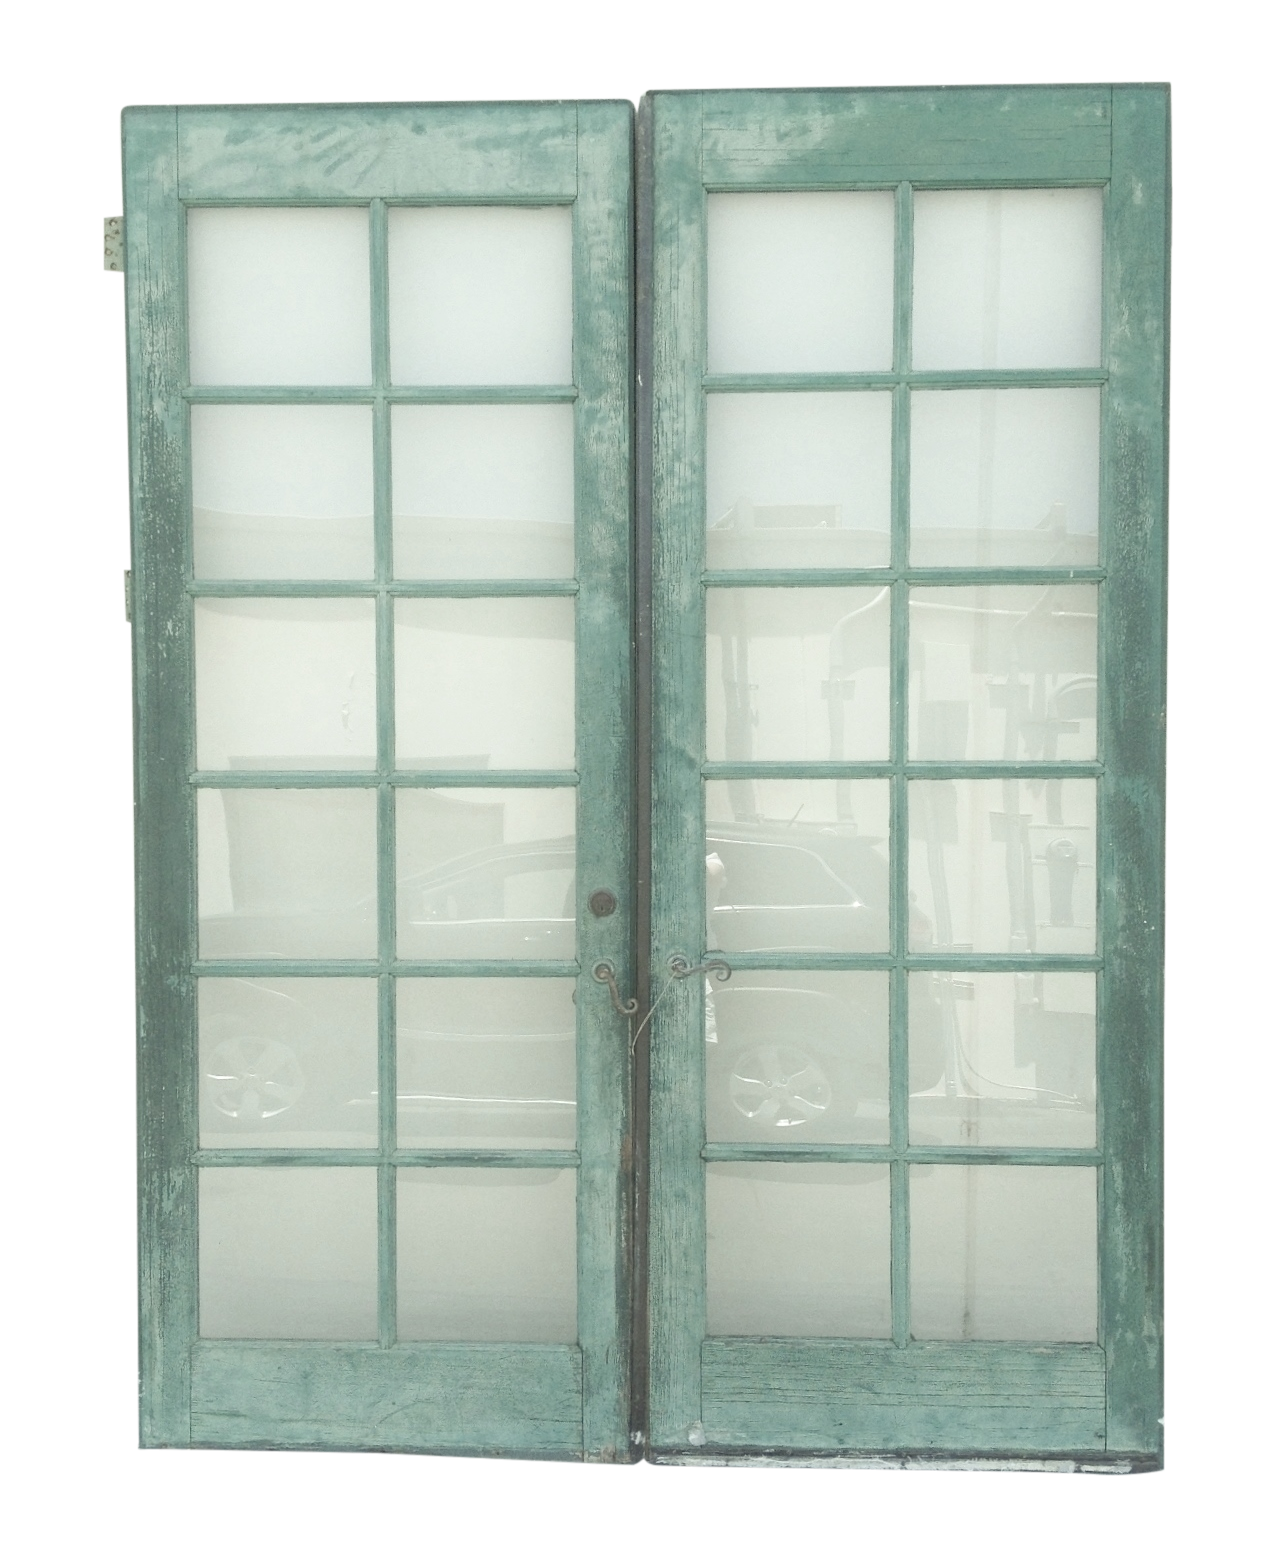 A Pair Of Architectural Painted 12 Light French Doors With Brass Hinges And A Lever Handle The Doors Are From Th French Doors Vintage Painting Glass Pane Door